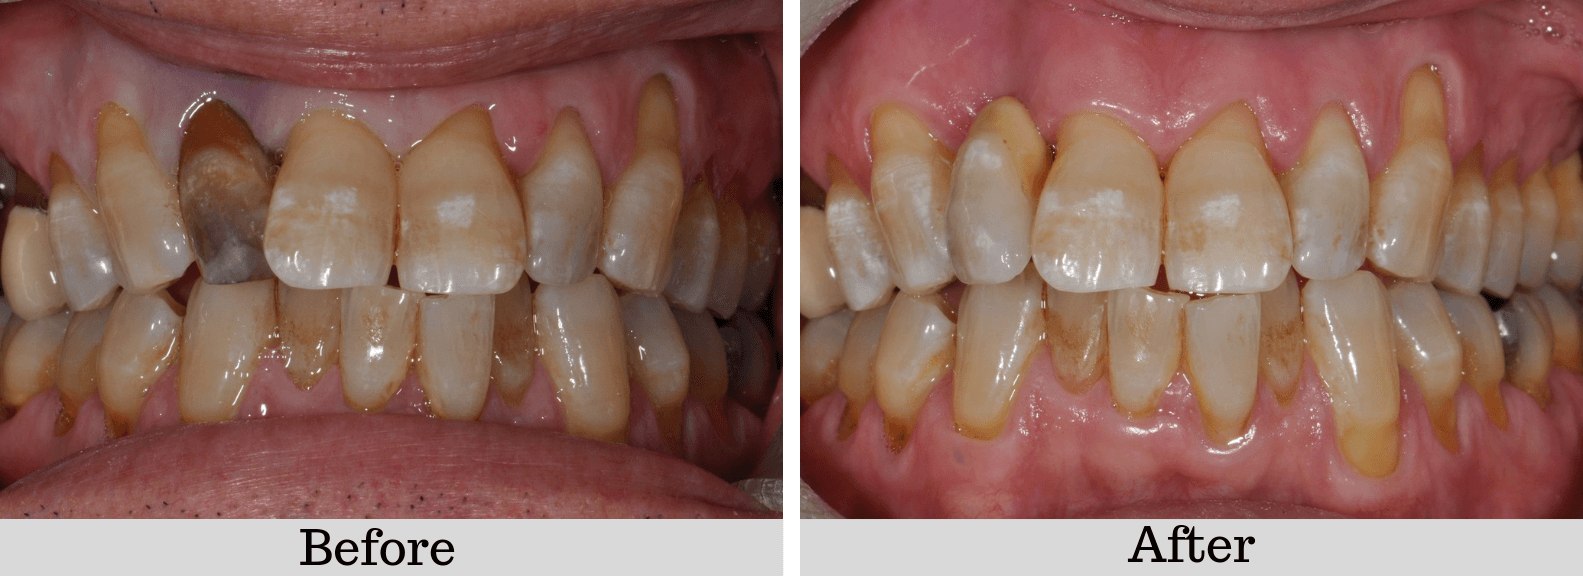 Adhesive-bridge before and after photos